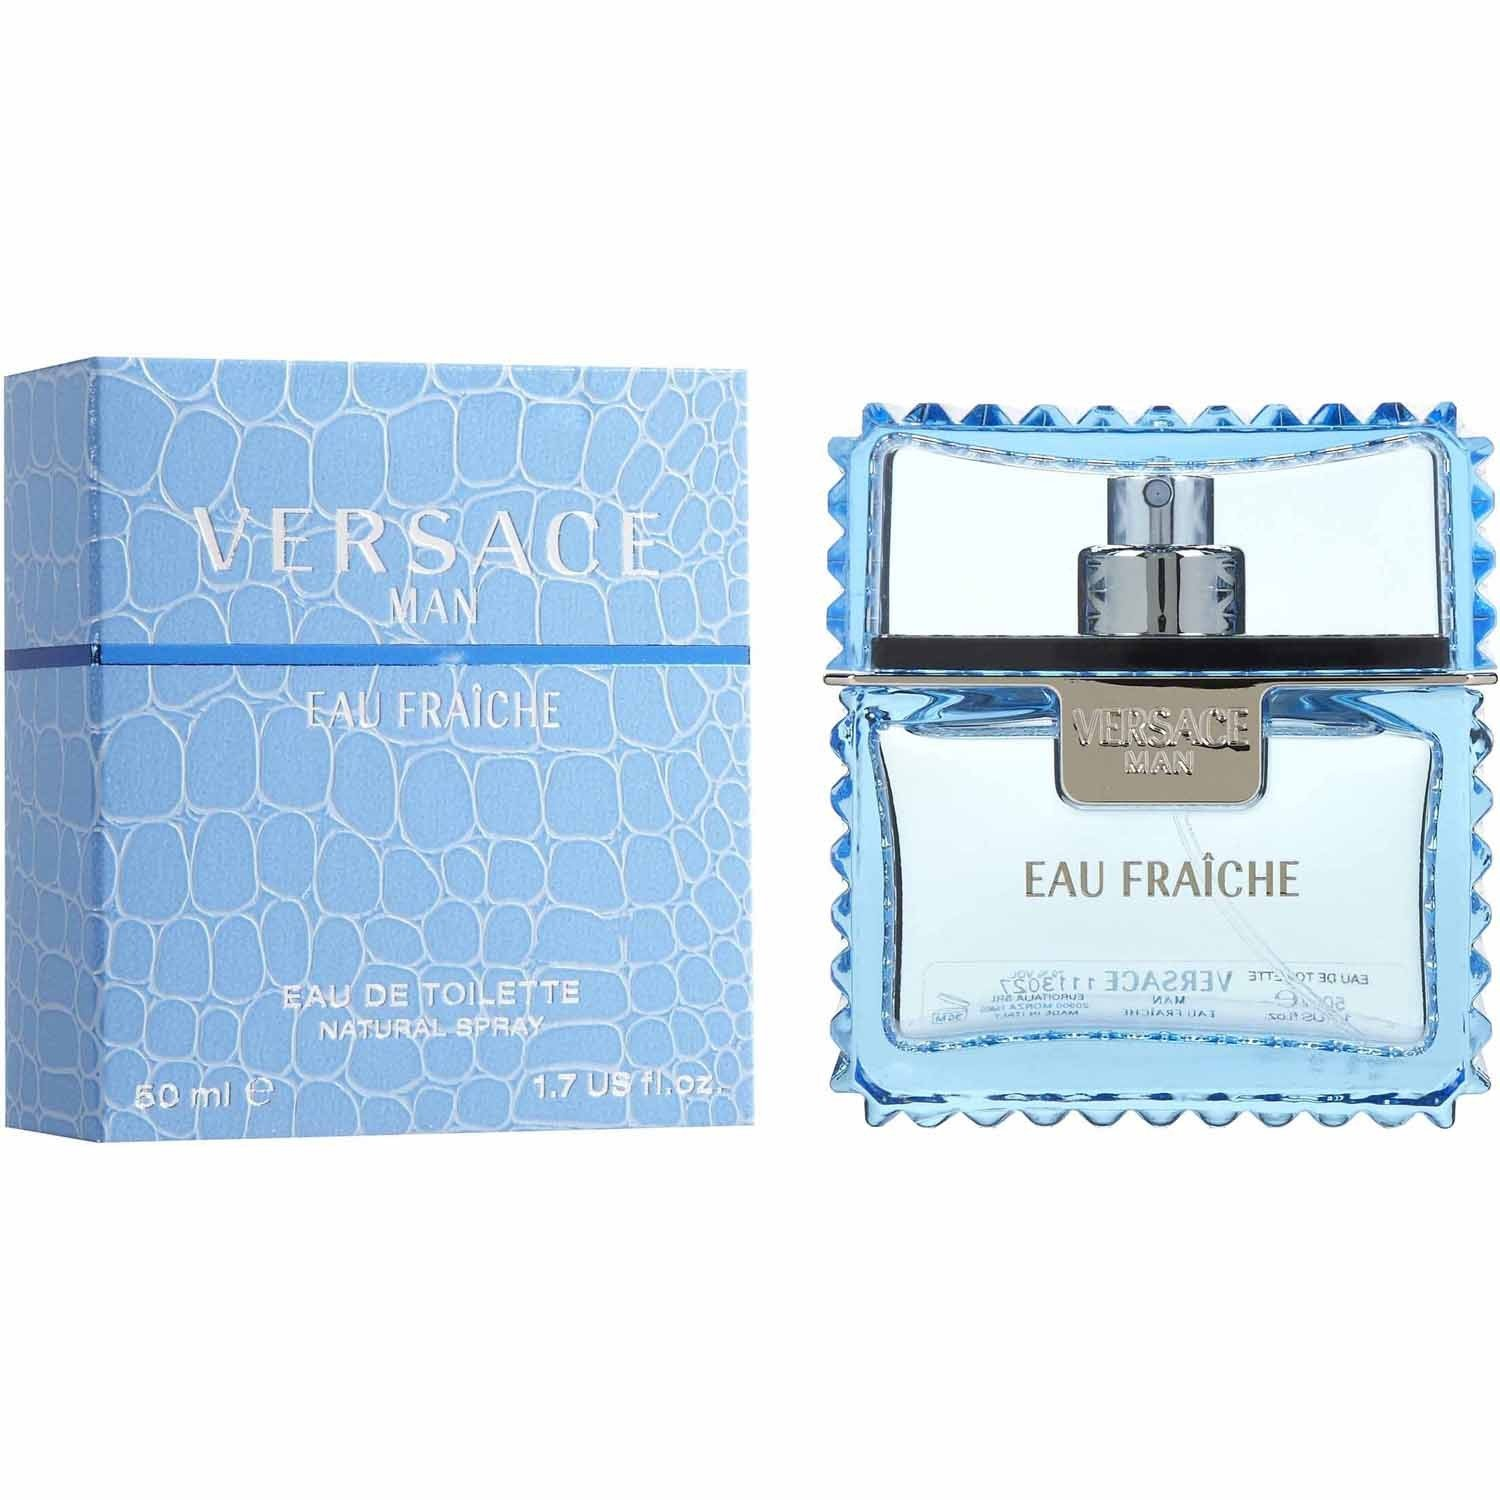 Ver sa ce Man Eau Fraiche by Gianni Vêrsace Eau De Toilette Spray 1.7 fl.oz./50 ml by Ve r s a ce